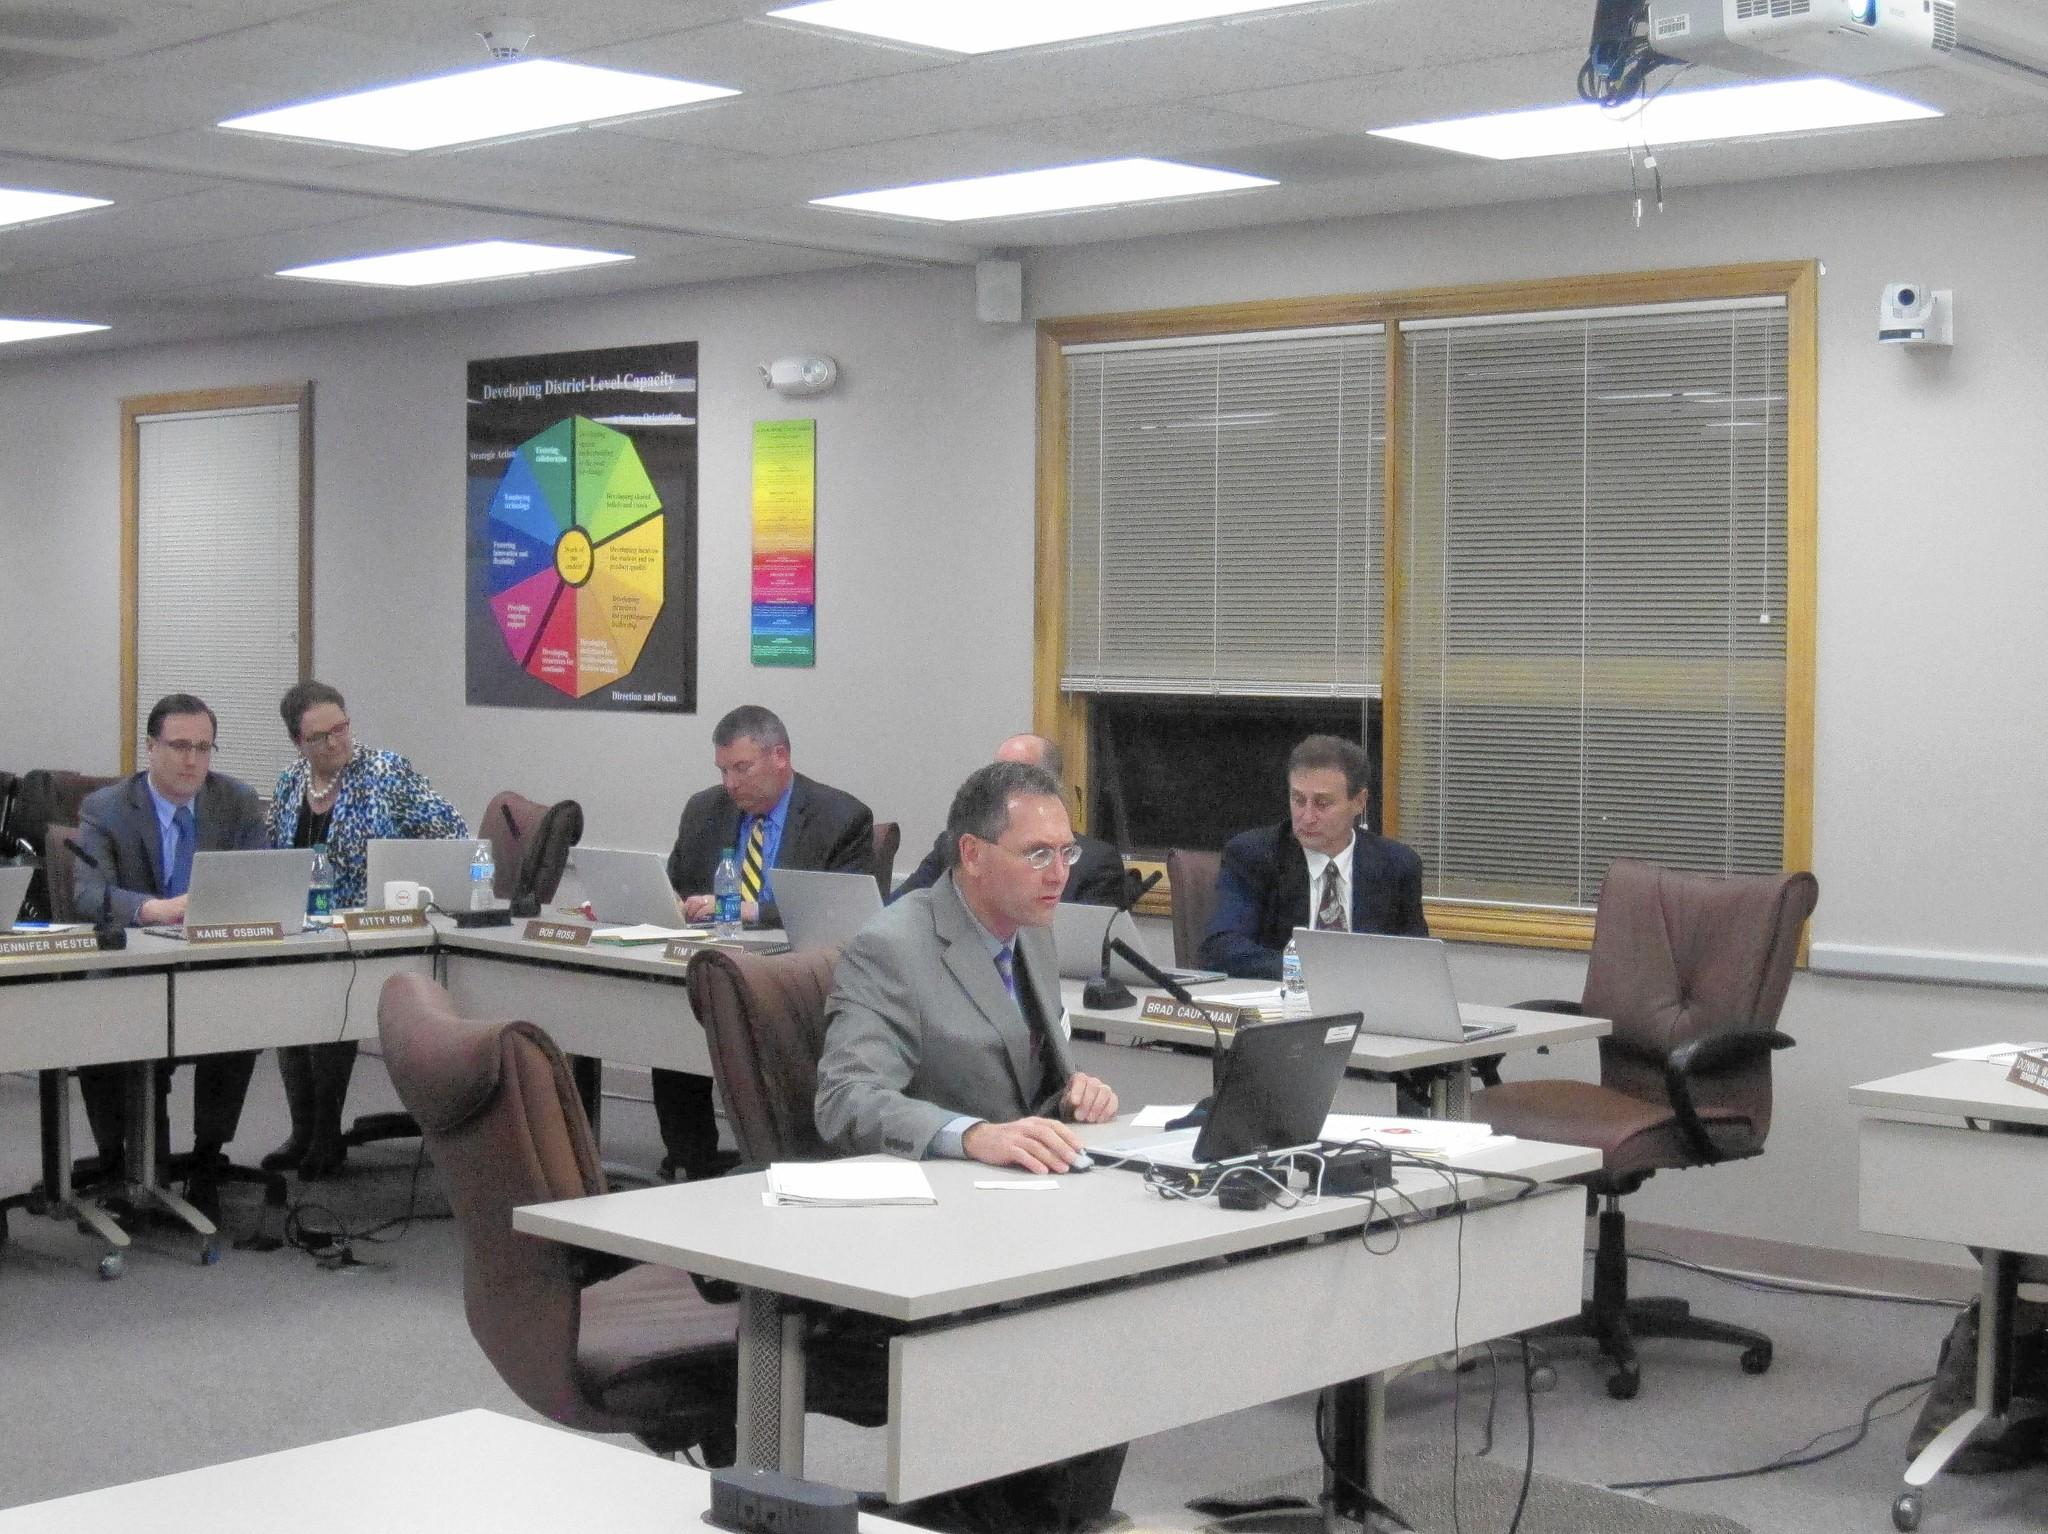 Naperville Unit District 203 Chief Financial Officer Brad Cauffman presents the budget to the school board.